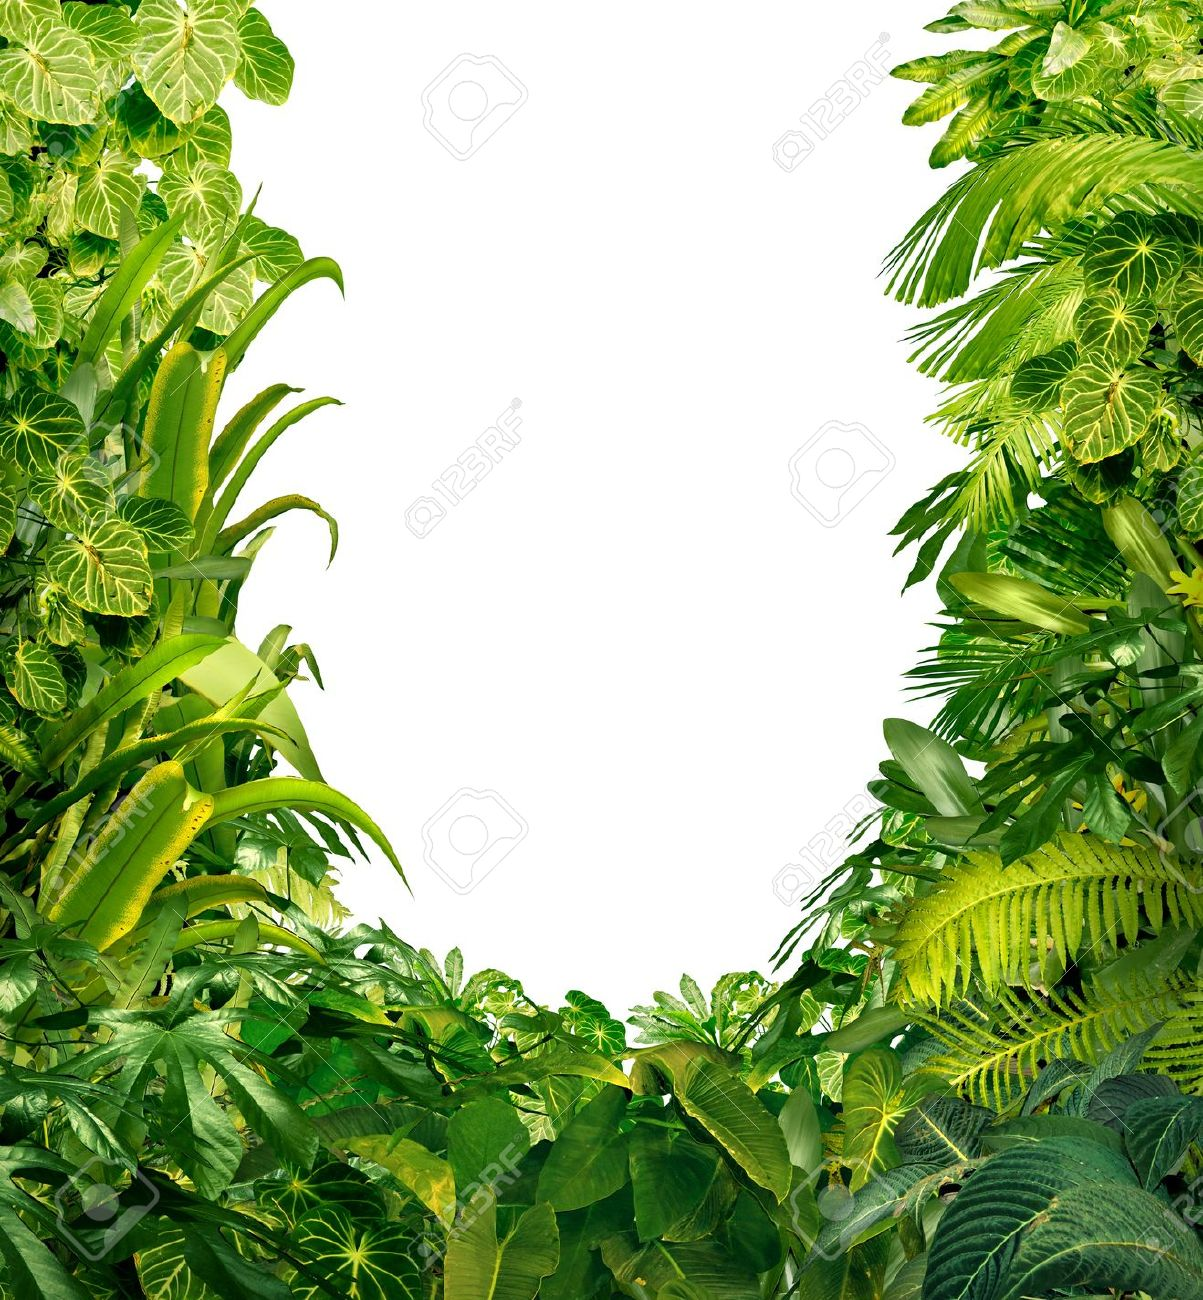 Tropical jungle as a blank frame with rich green plants as ferns and palm tree leaves found in southern hot climates as south America  Hawaii and Asia with a white isolated copy space center Stock Photo - 17229340